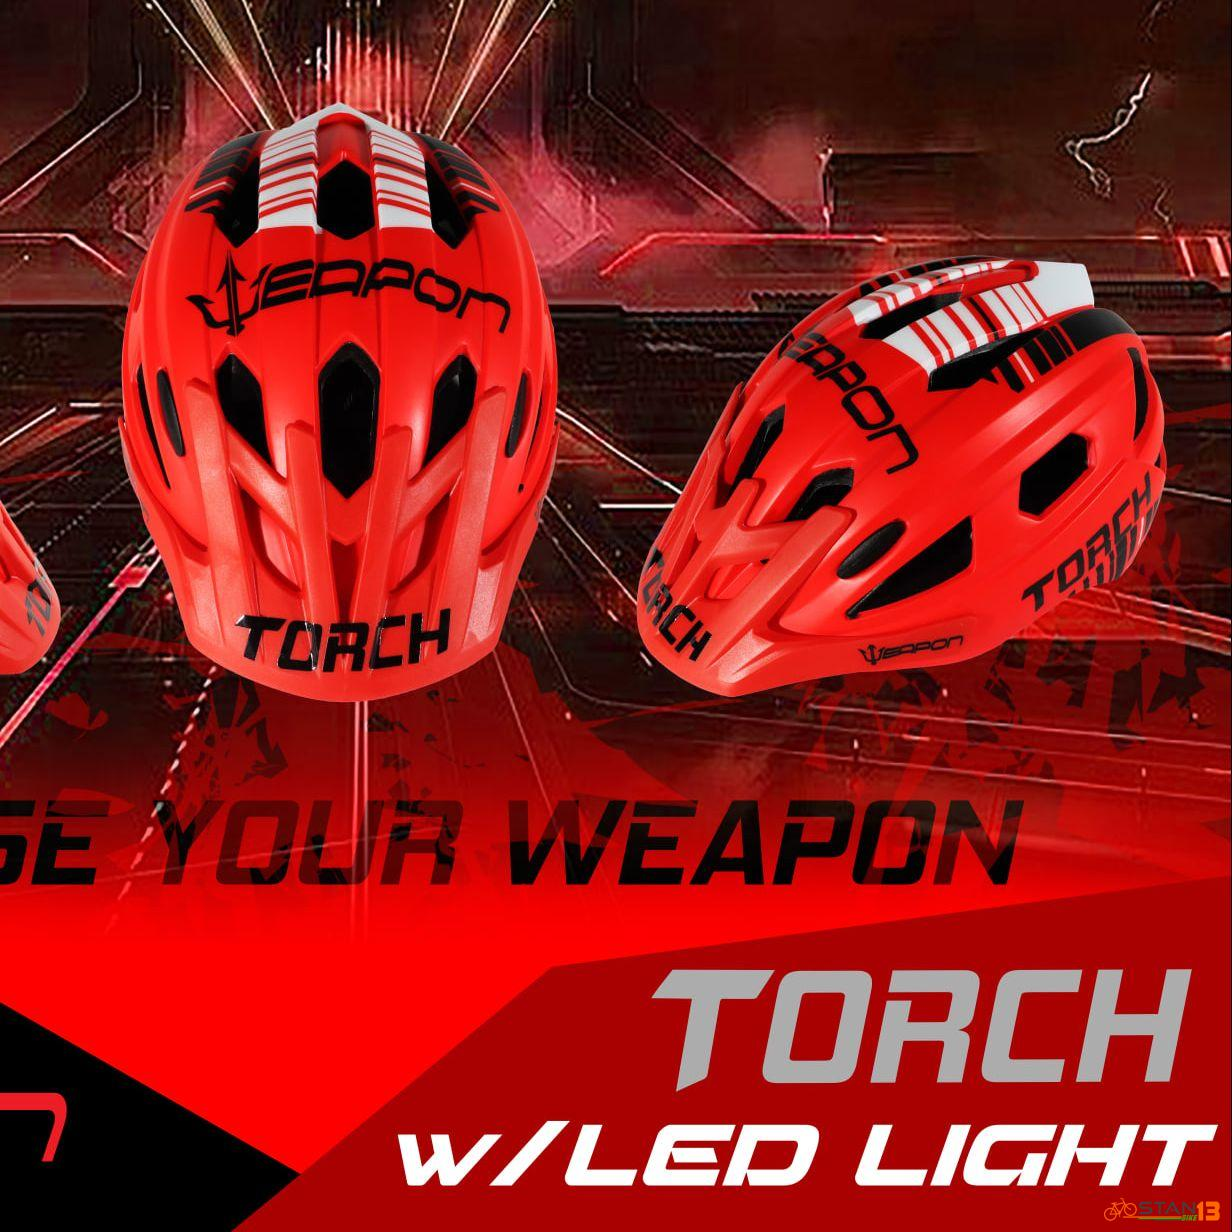 Helmet Weapon Torch with tail light